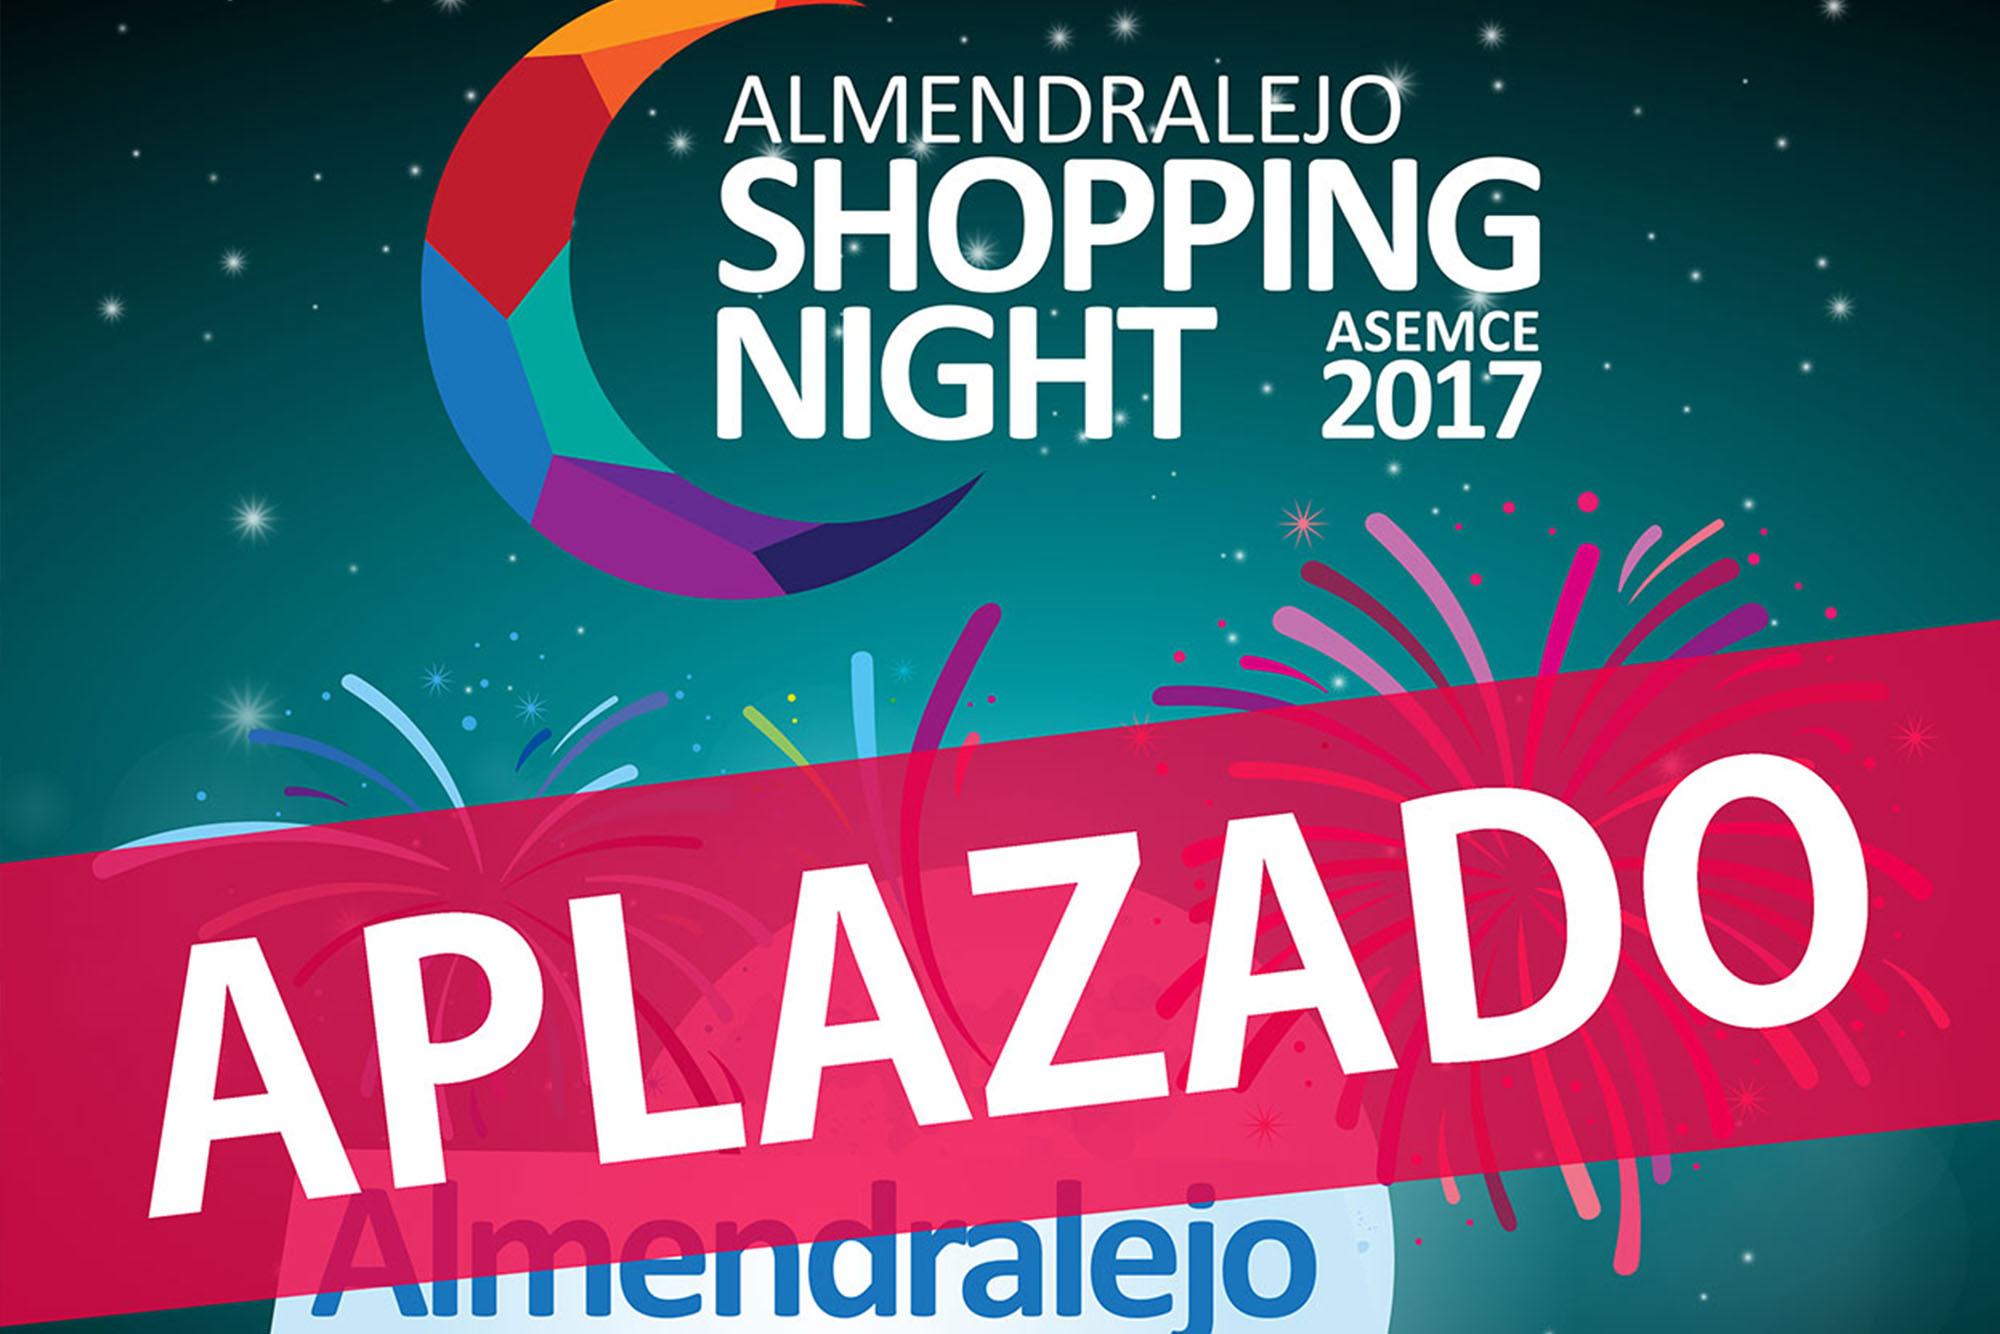 shopping-night-2017-aplazado